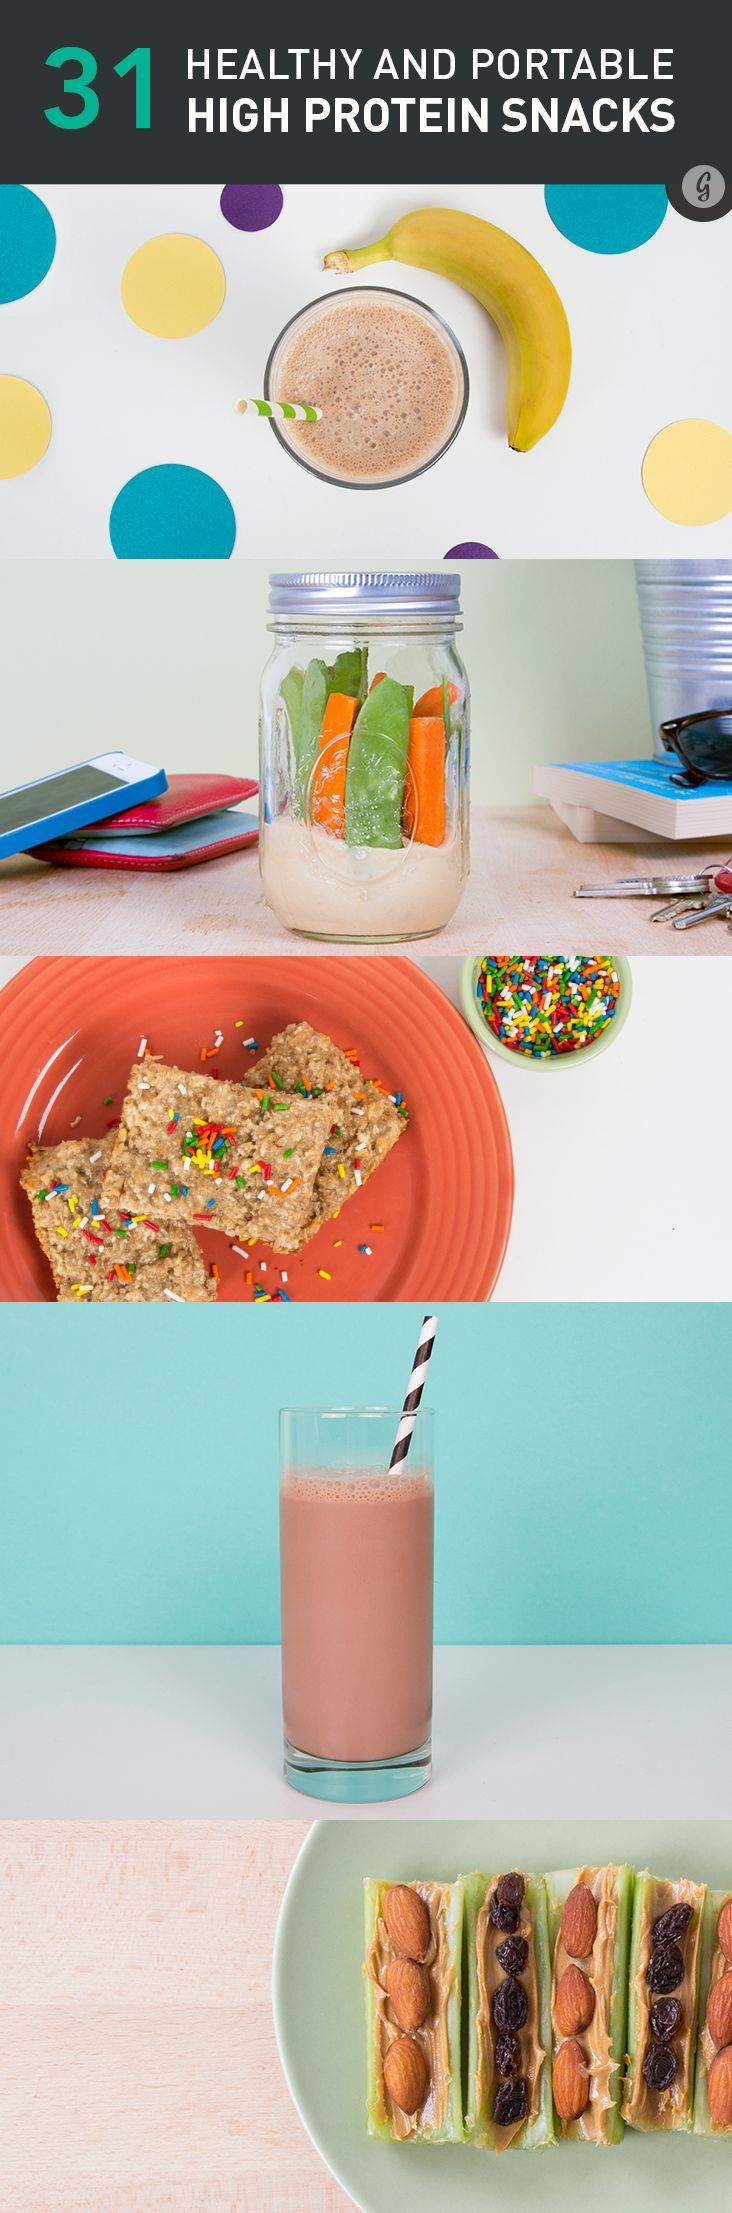 31 Healthy and Portable High-Protein Snacks — Take these easy and delicious DIY snacks with you wherever you need to go. #highprotein #diy #snacks #easy #greatist